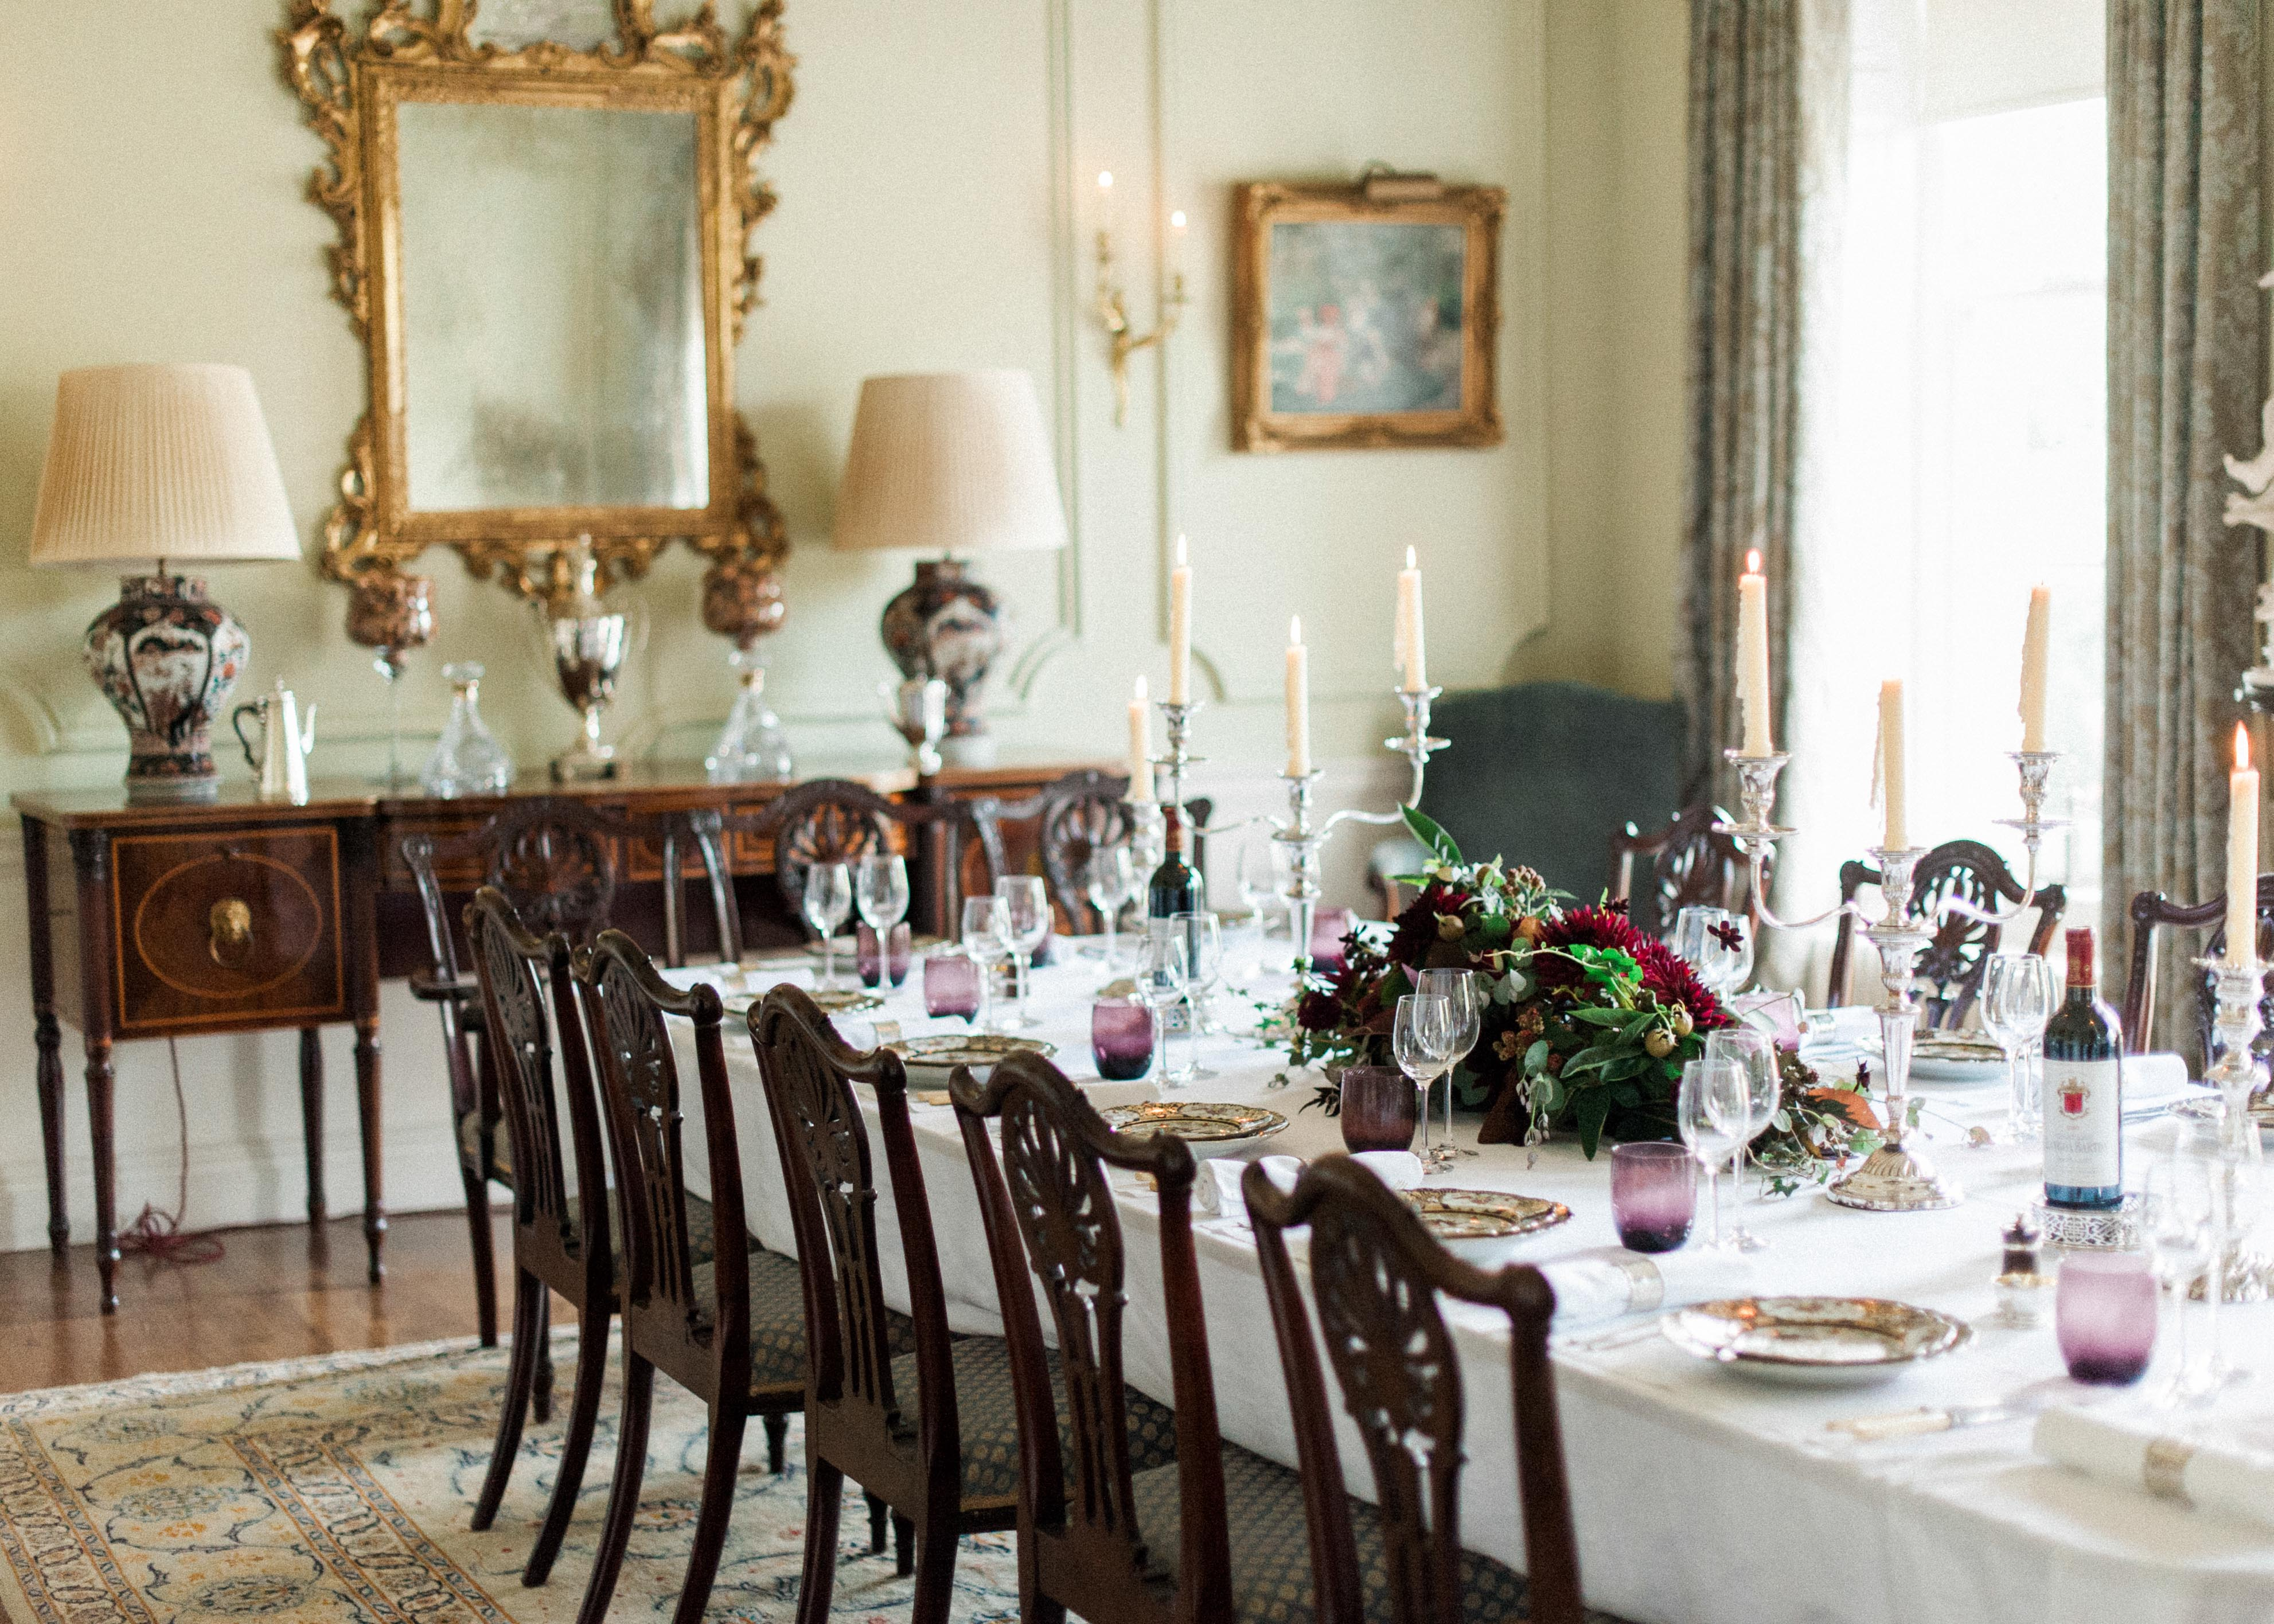 The dining room event venue wickham house for Dining room reigate